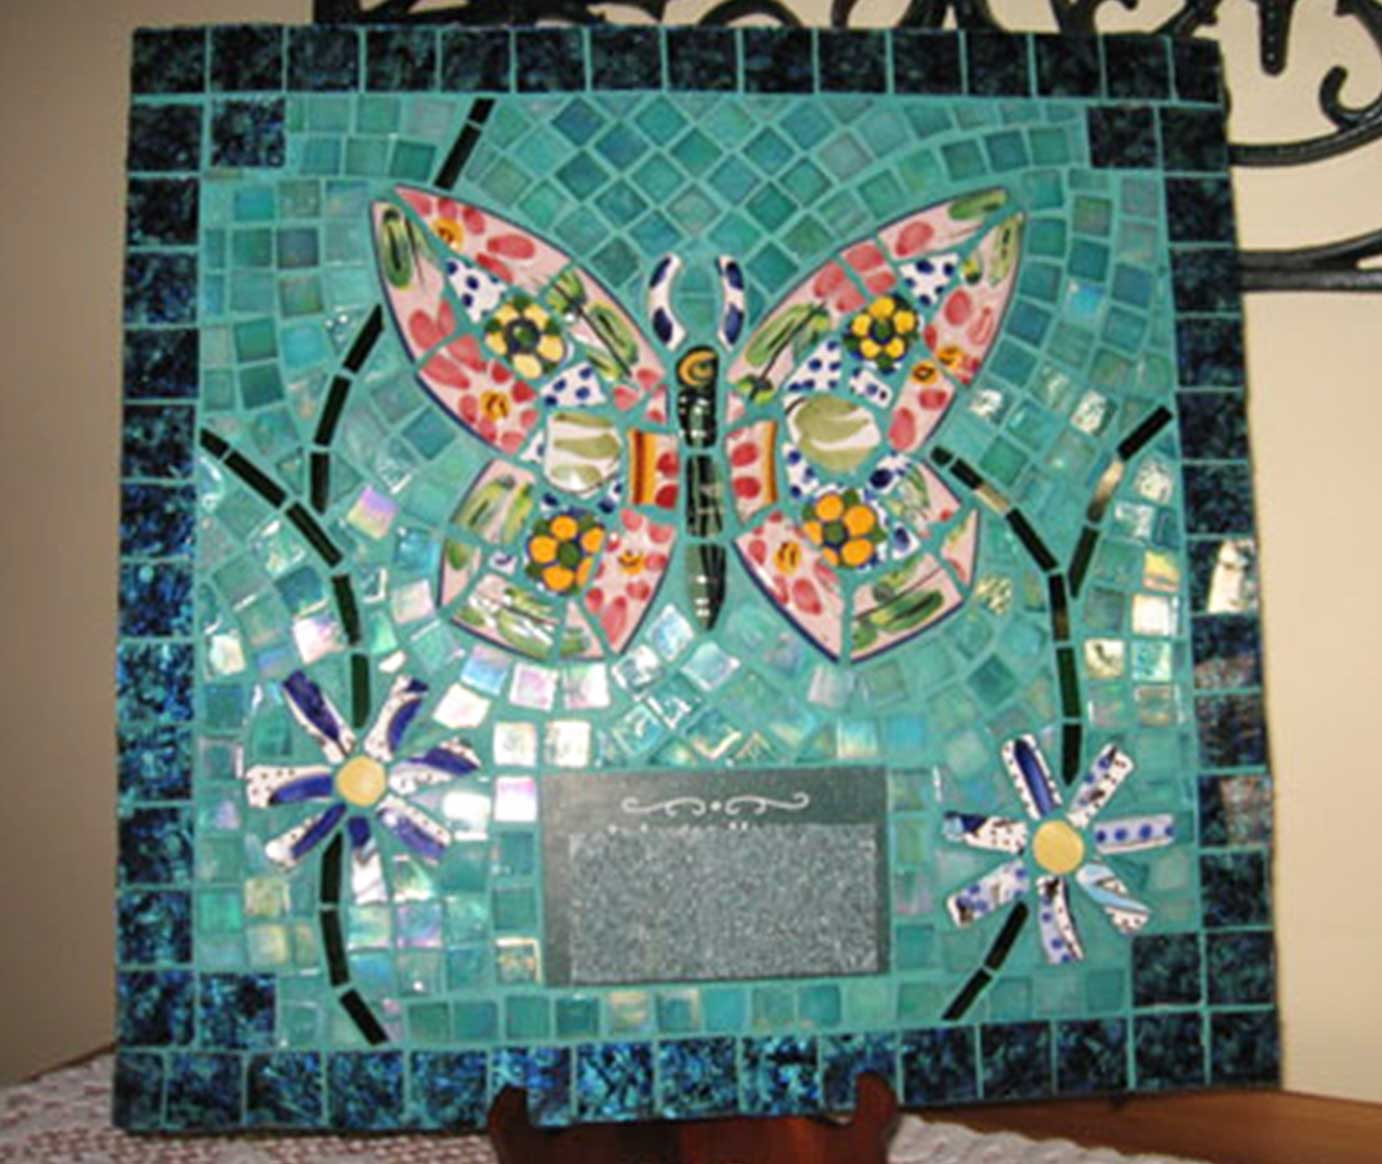 Mosaic Memorial Picture Plaque of a Colorful Butterfly by Water's End Studio Artist Linda Solby